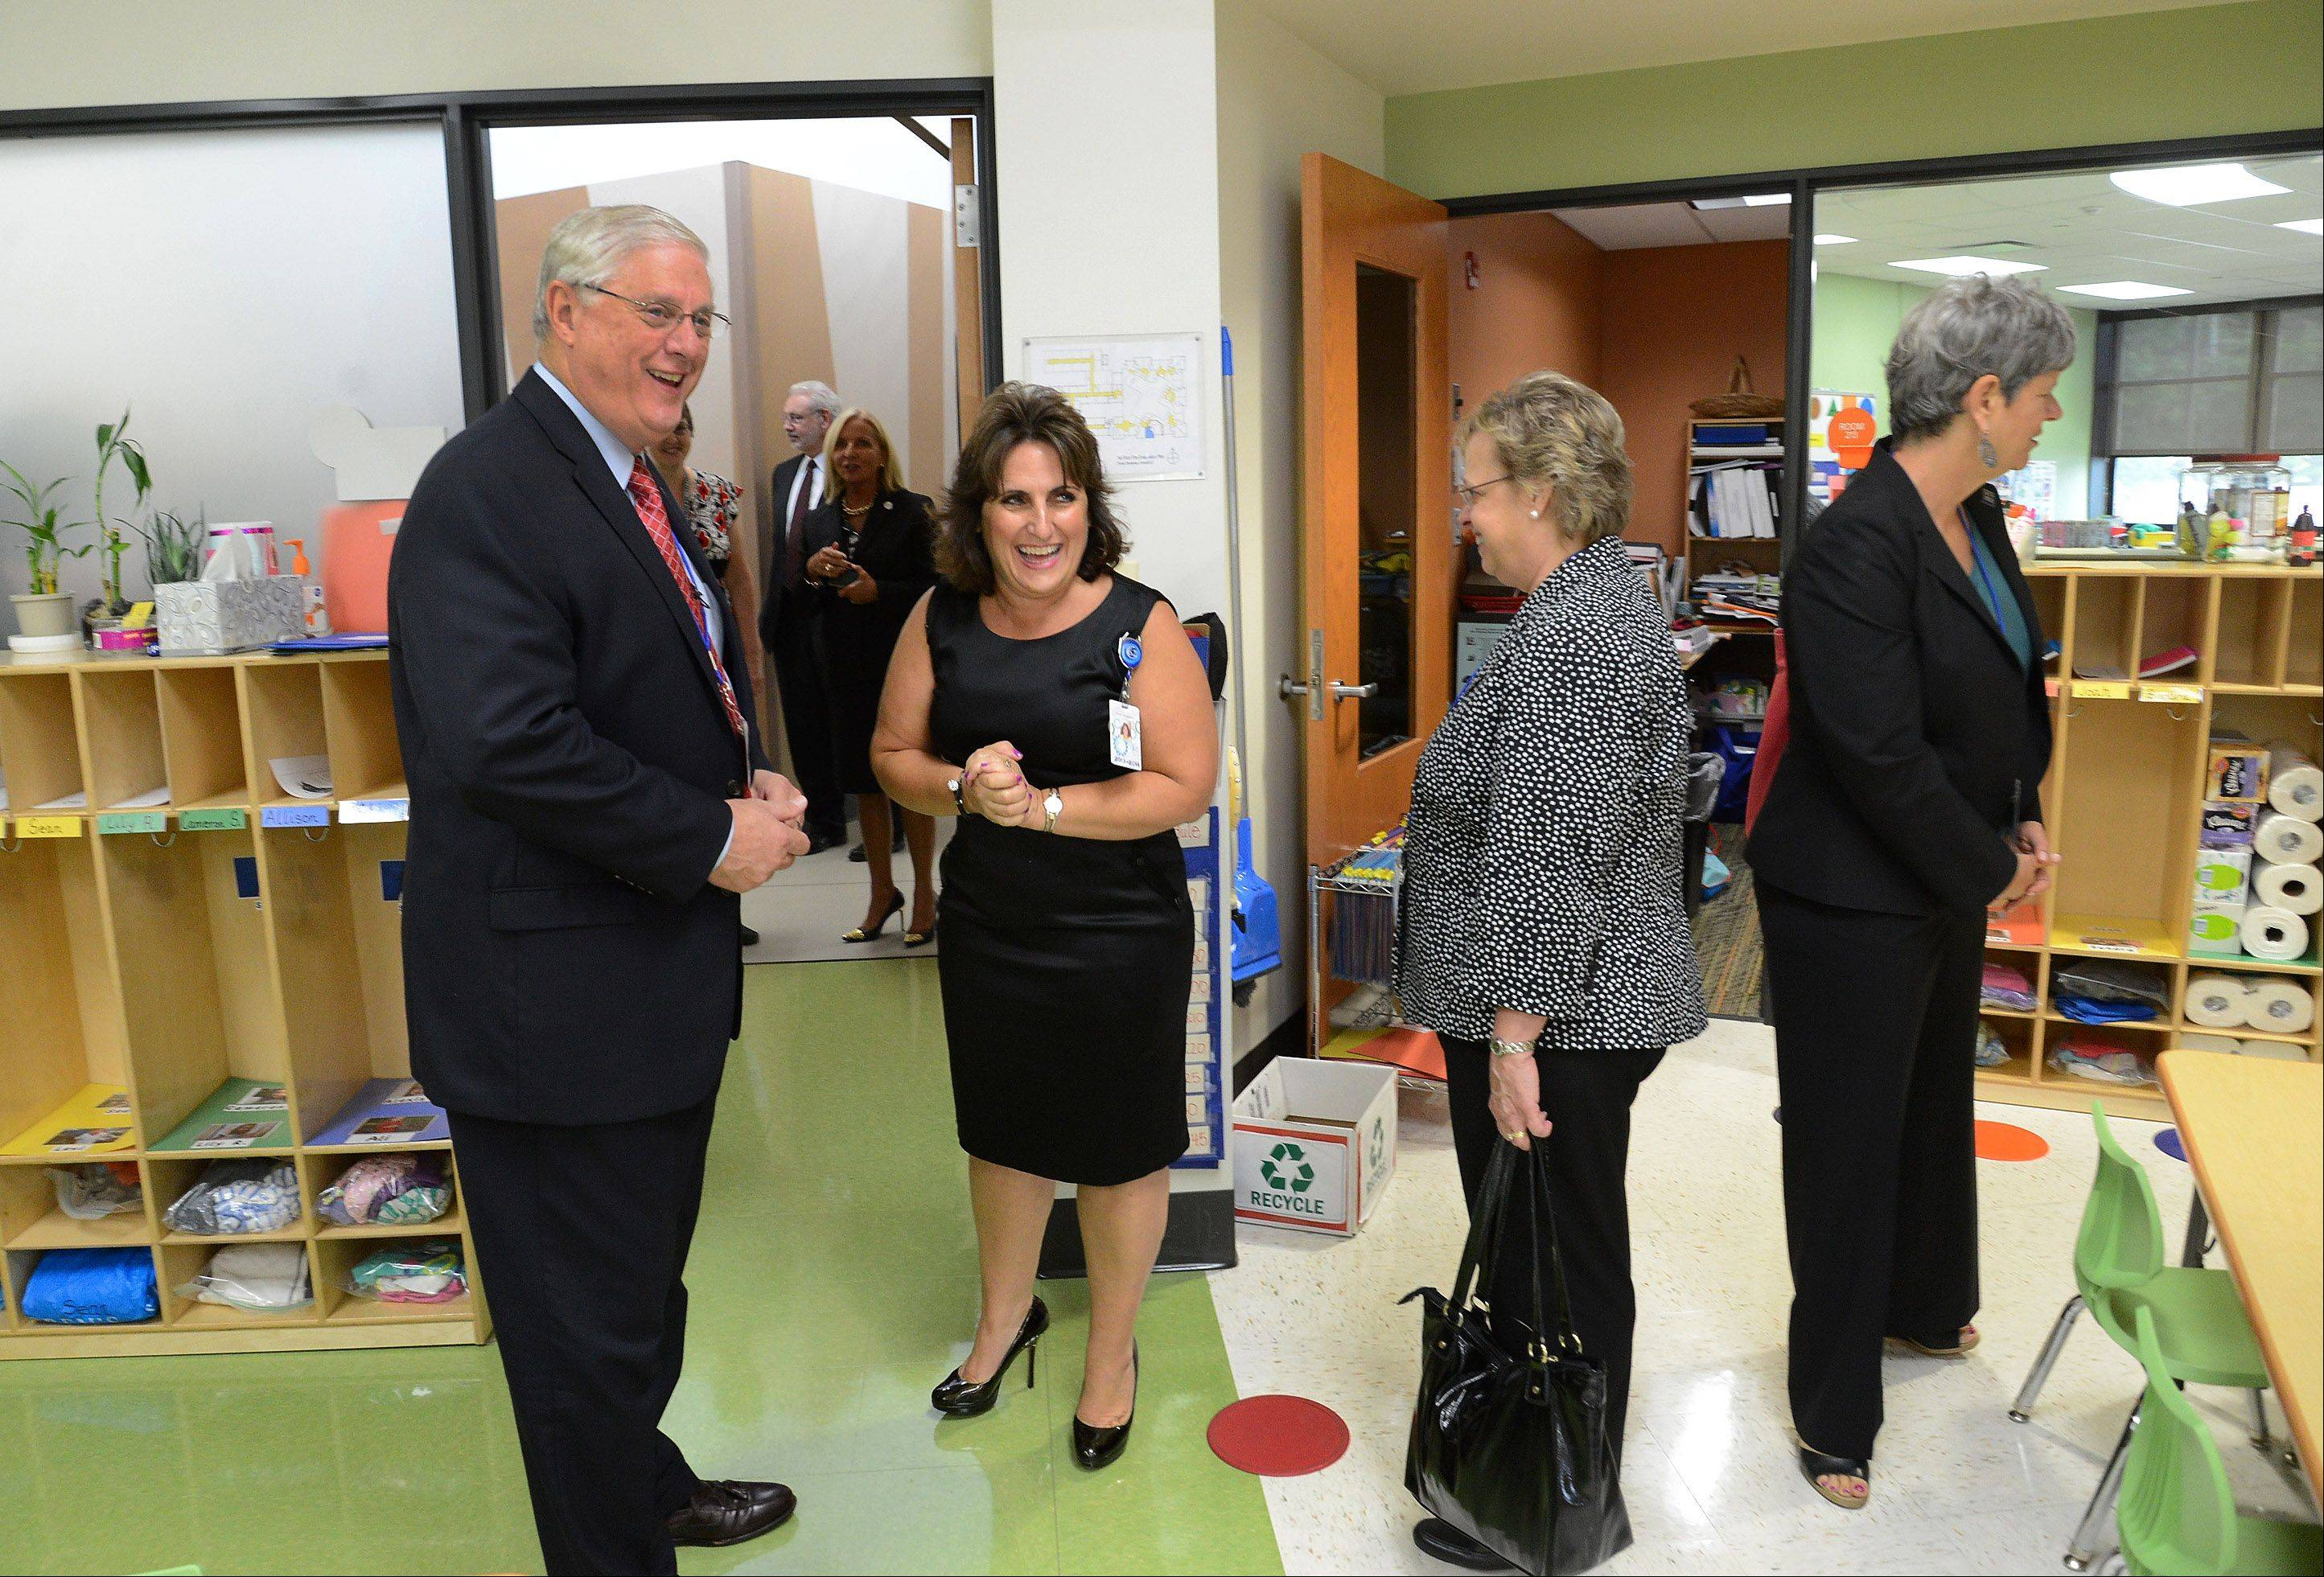 Margie Beniaris, director of Early Learning Center, gives Dennis Van Roekel, president of the National Education Association, a tour of one of the classrooms of the Early Learning Childhood Center at Forest Elementary School in Des Plaines.